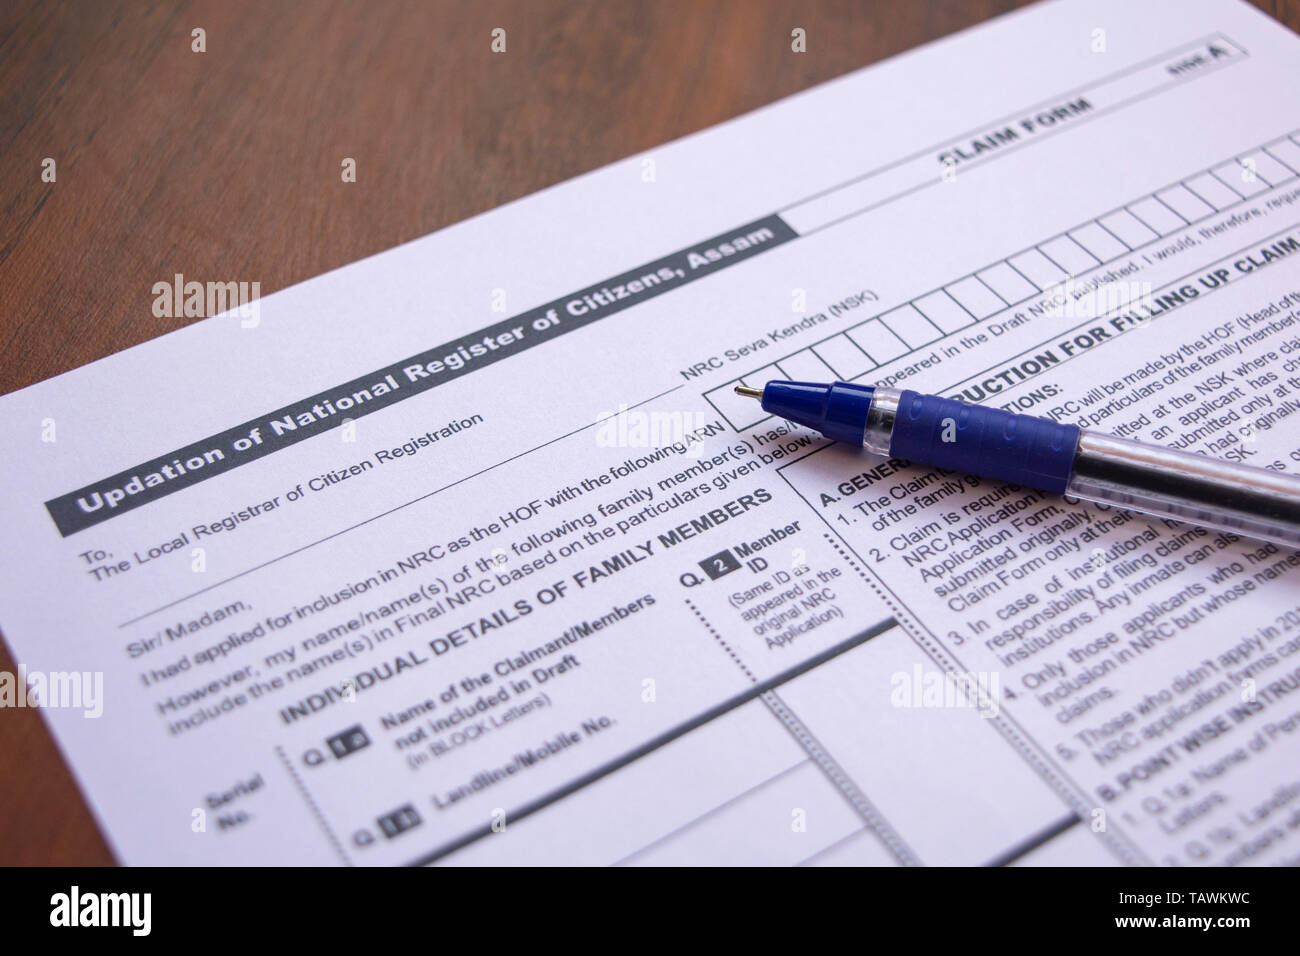 Maski, India- 20,May 2019 : Concept of filling NRC or National Register of Citizens form with pen on table. - Stock Image